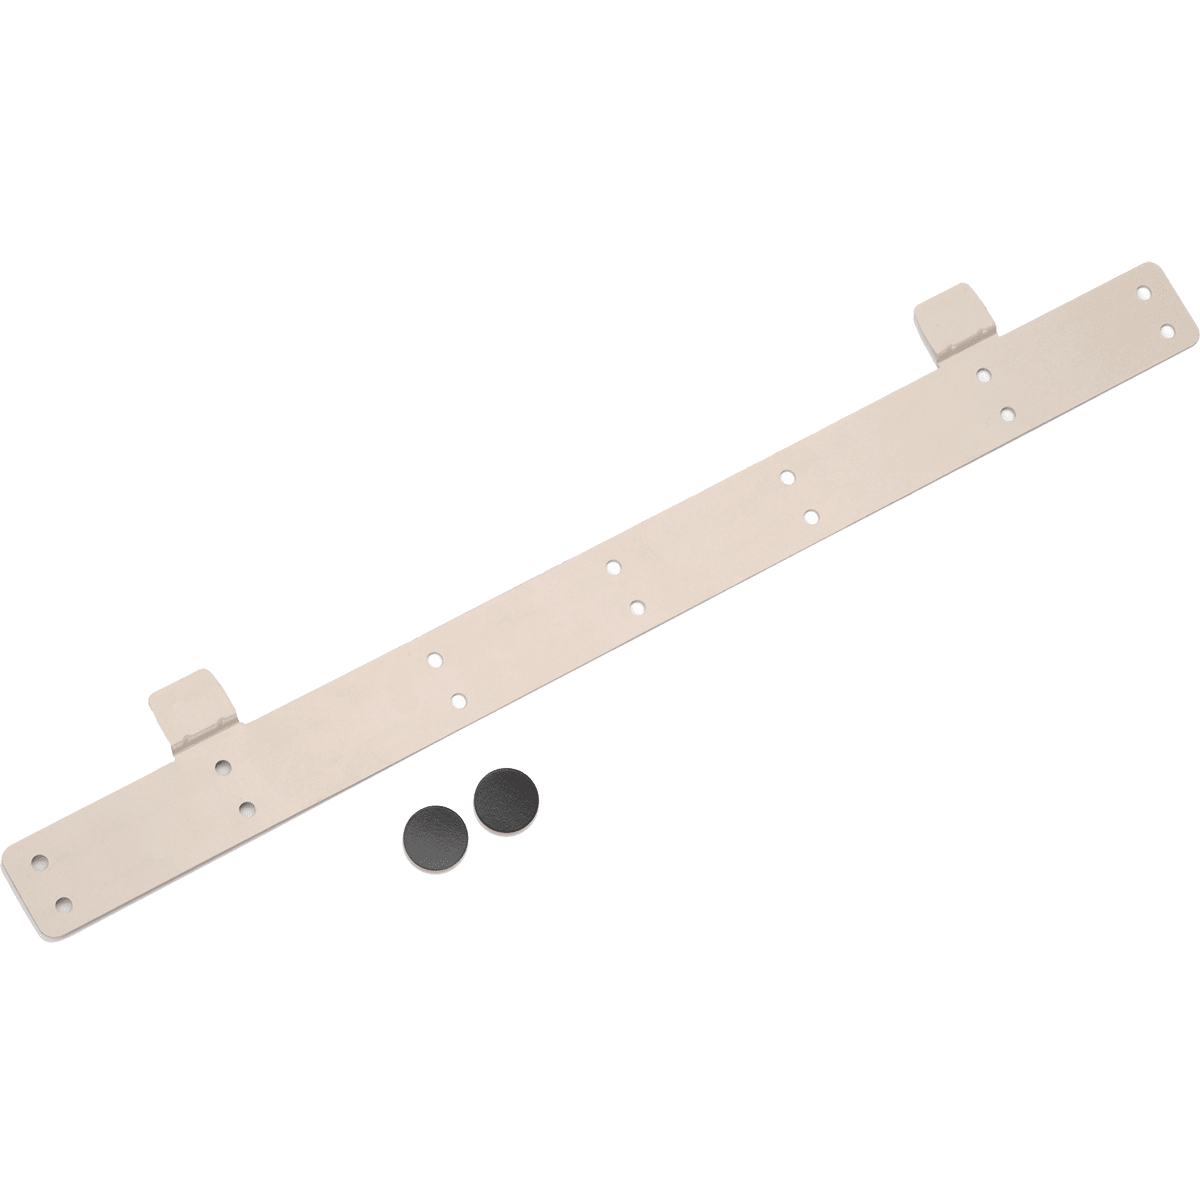 Rabbit Air MinusA2 Wall Mount Bracket ra1033